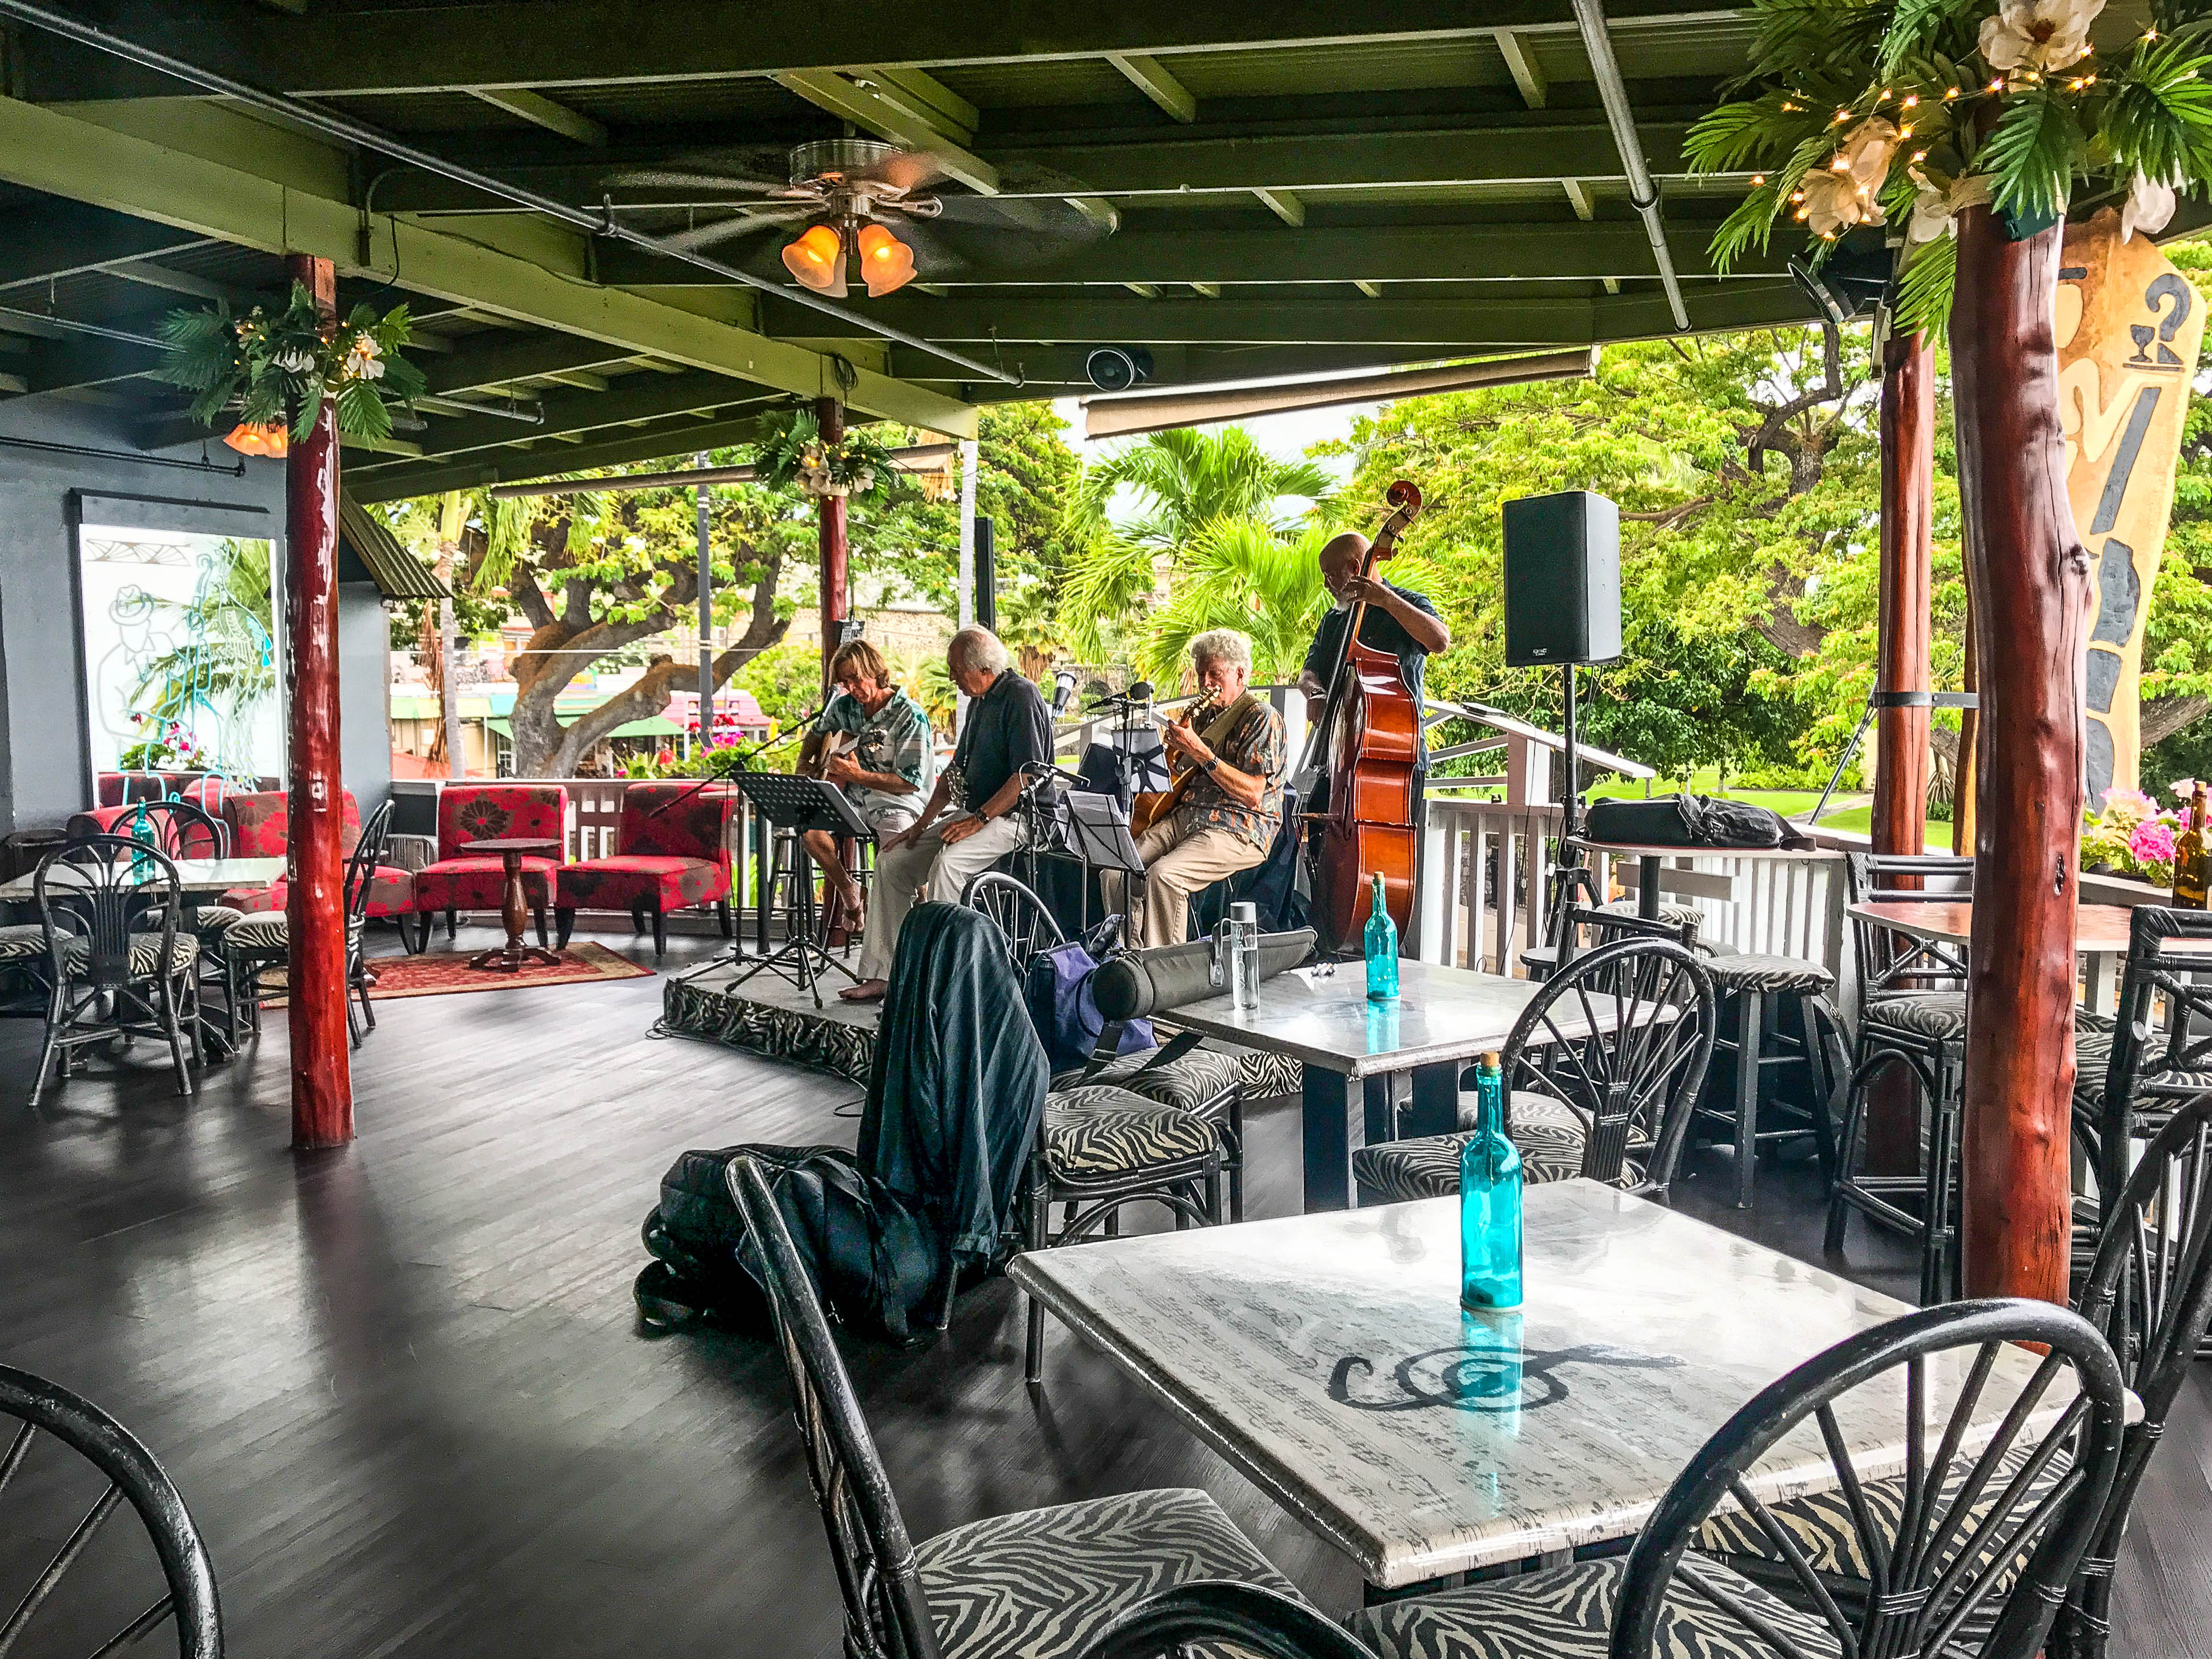 Gertrude's Jazz Bar - The Best Bars in Kona, Hawaii